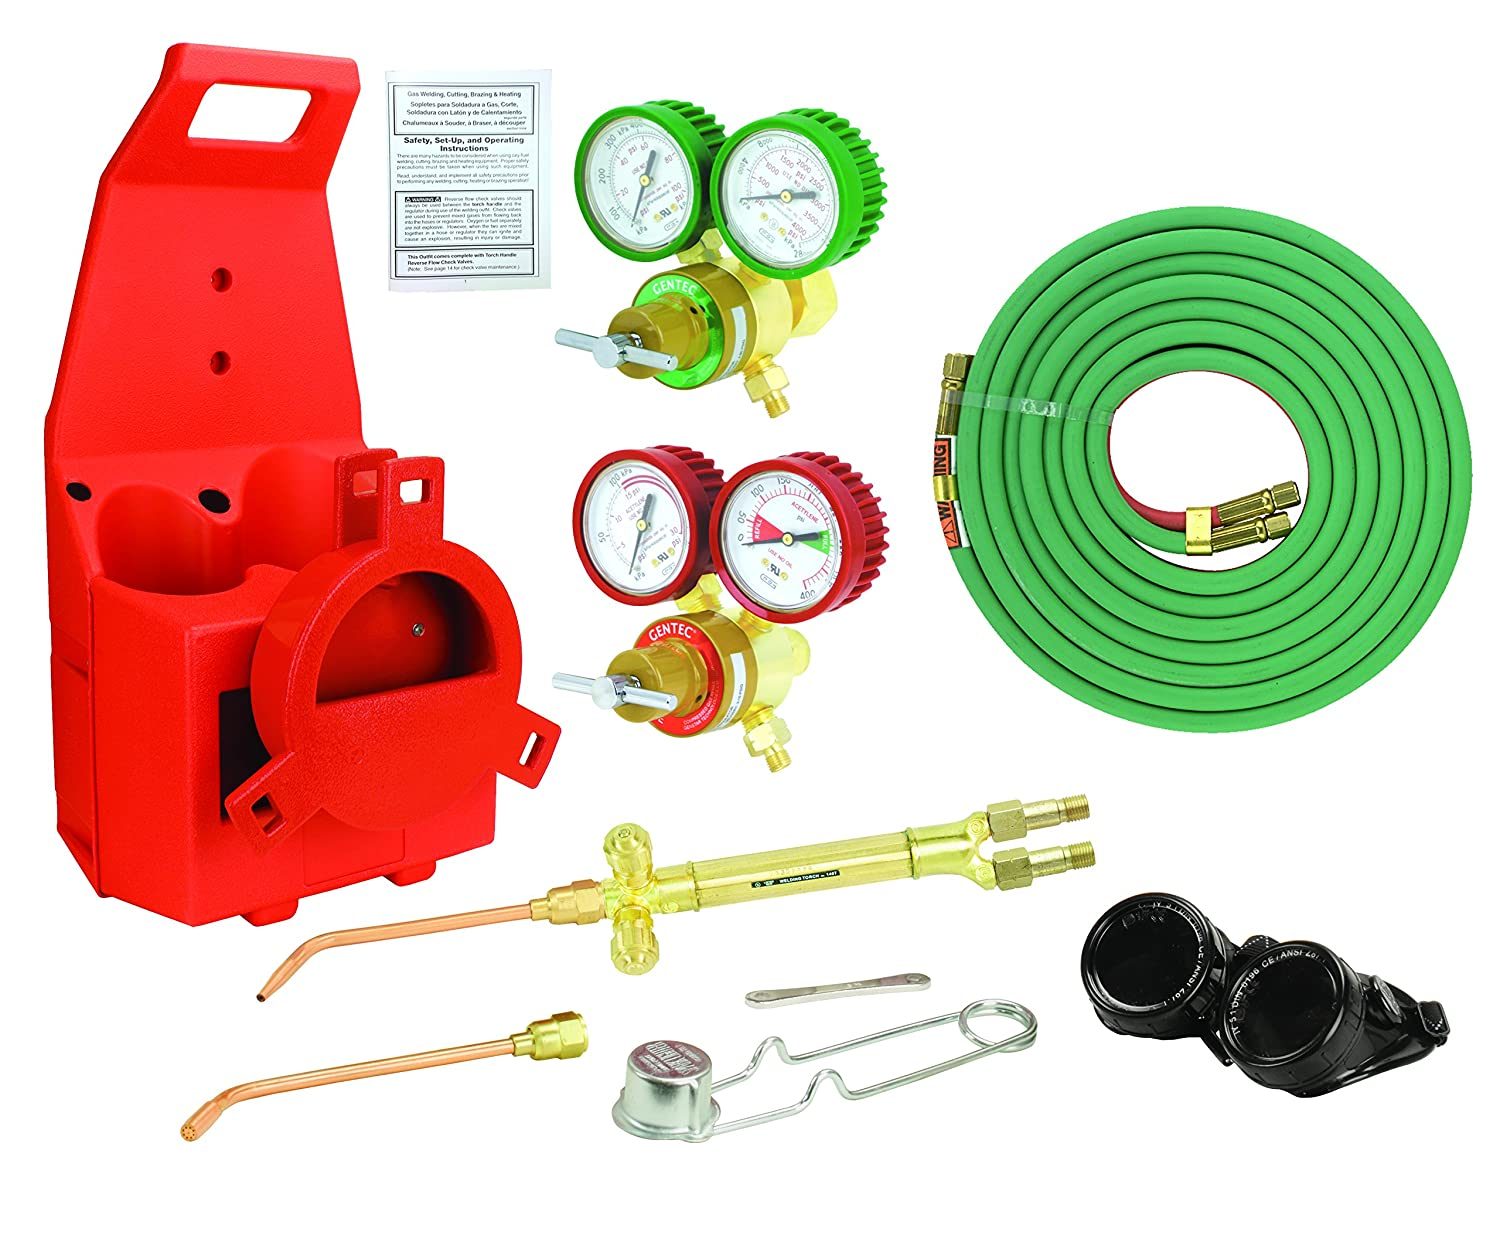 GENTEC KA30MC-T Oxy-Acetylene Outfit - Toolboxes - Amazon.com